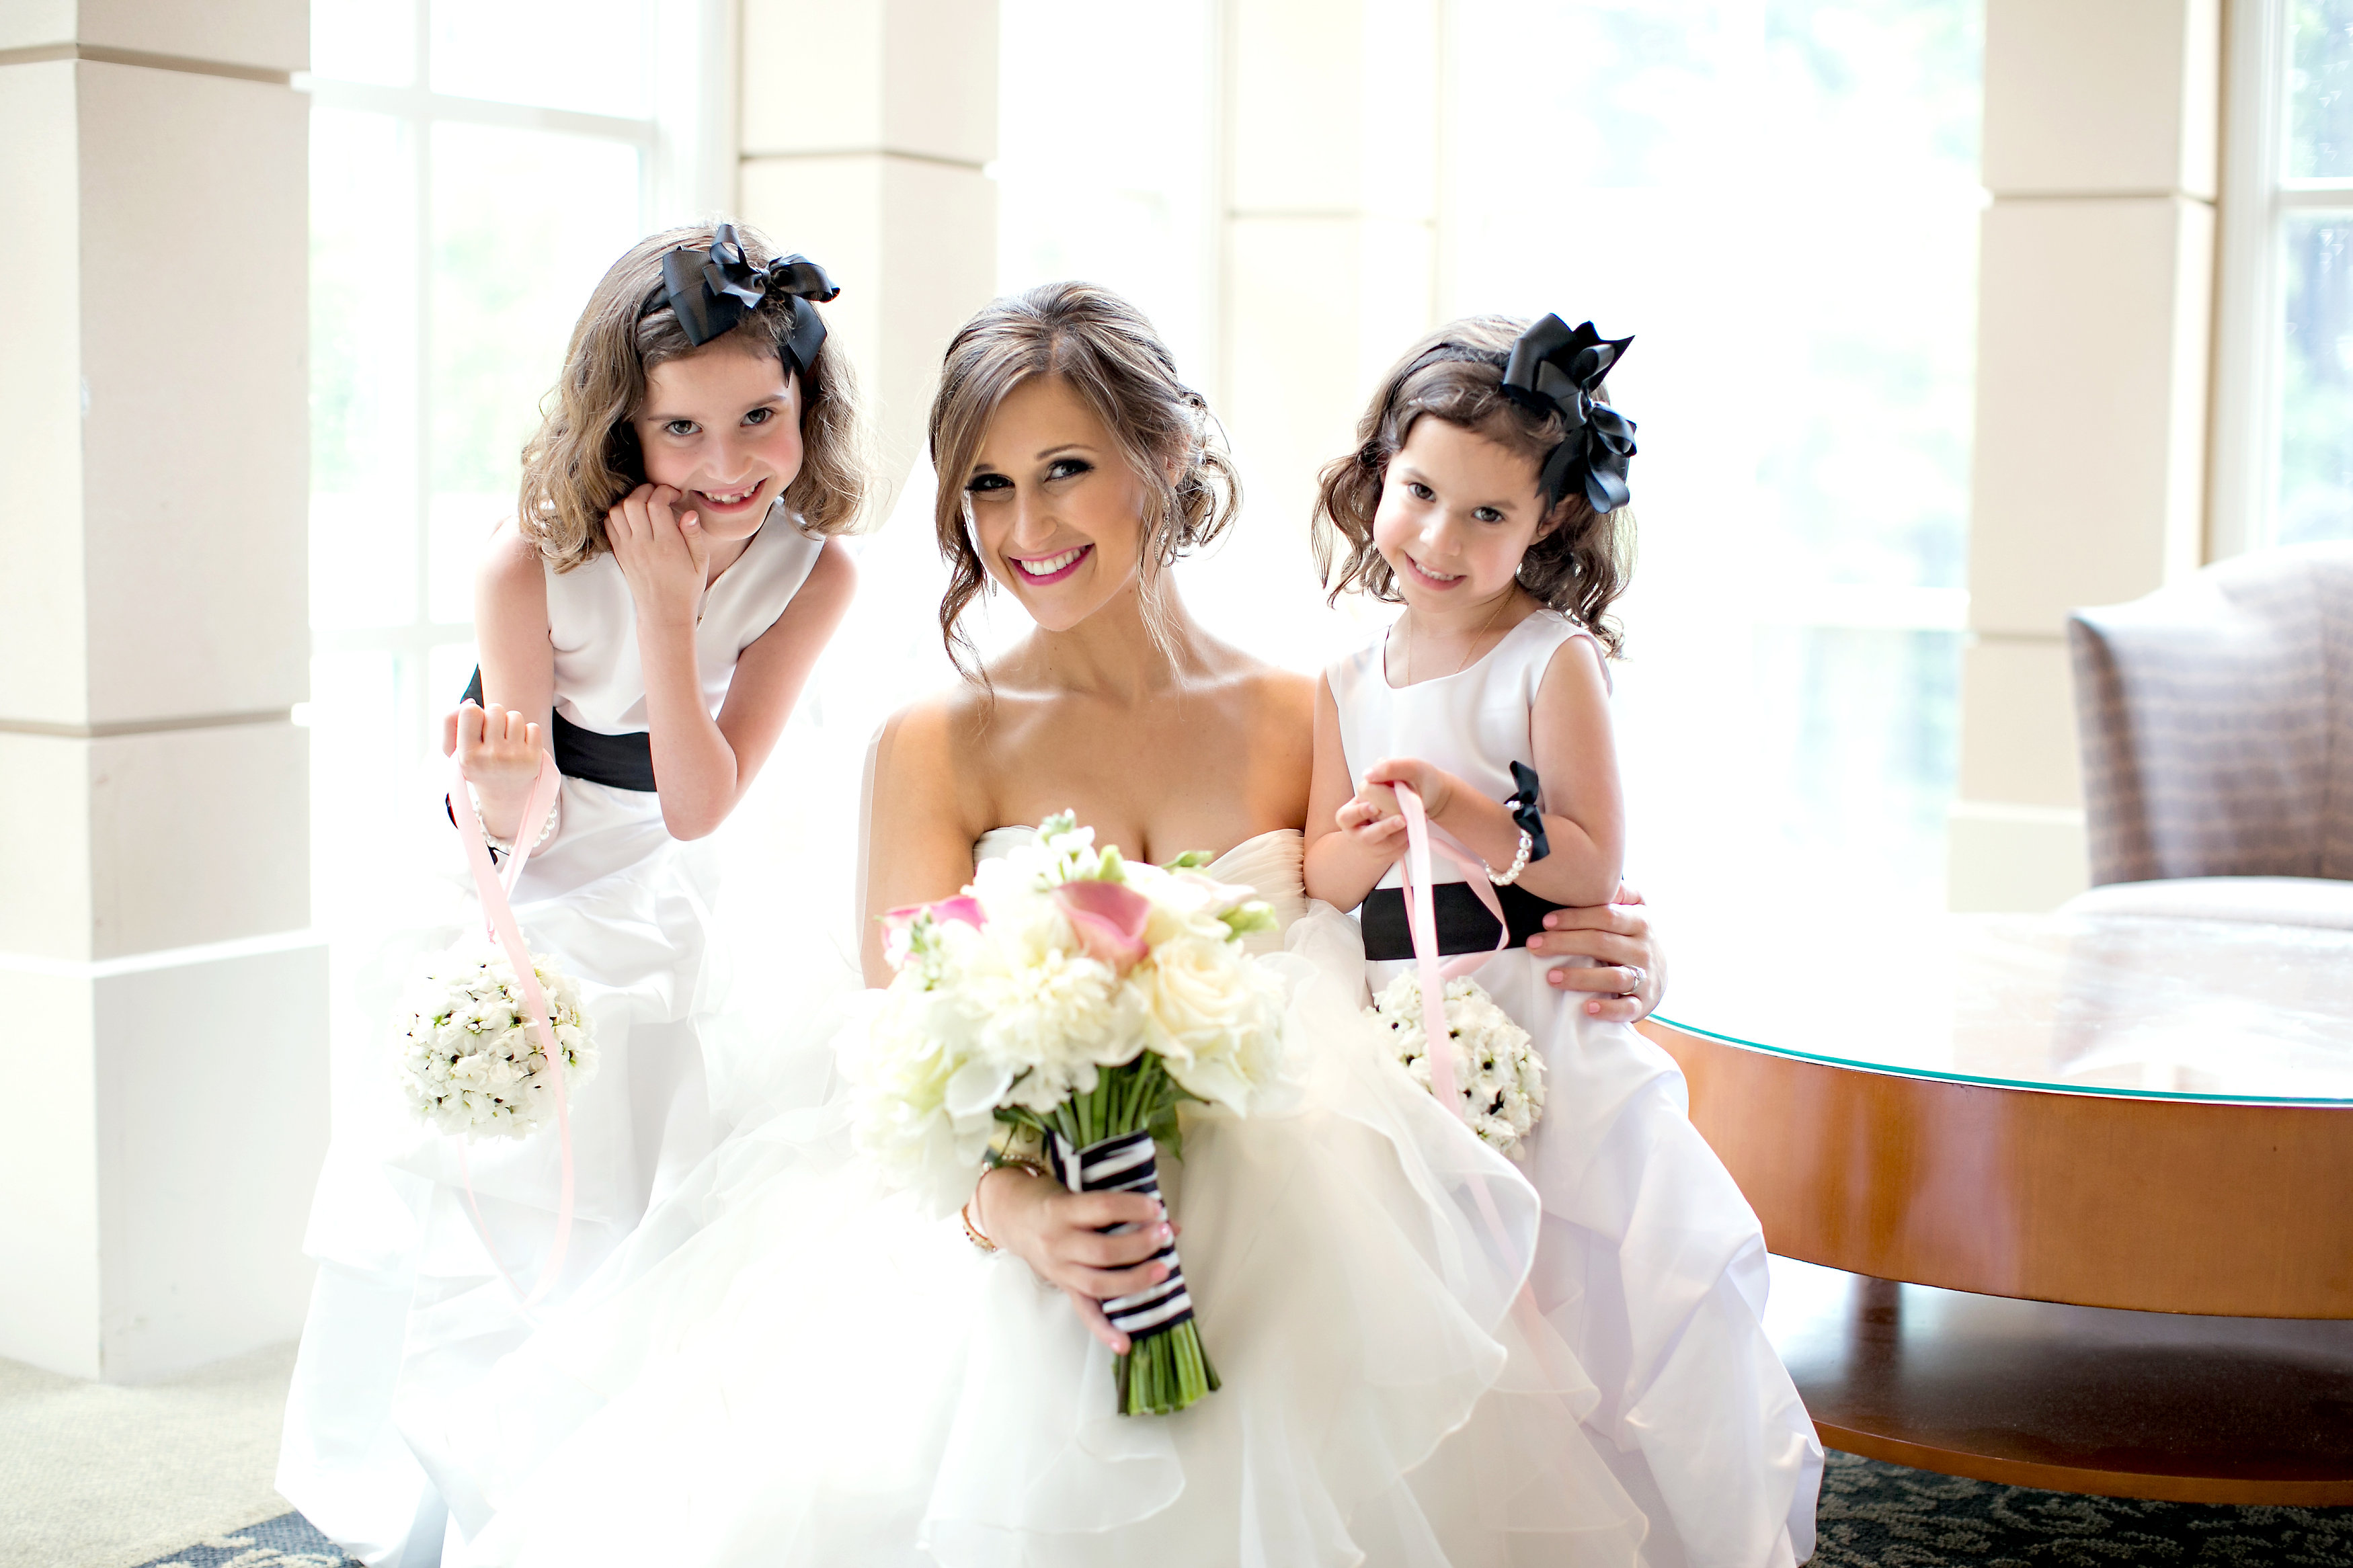 Bride With Flower Girls At Atlanta Jewish Wedding The Temple